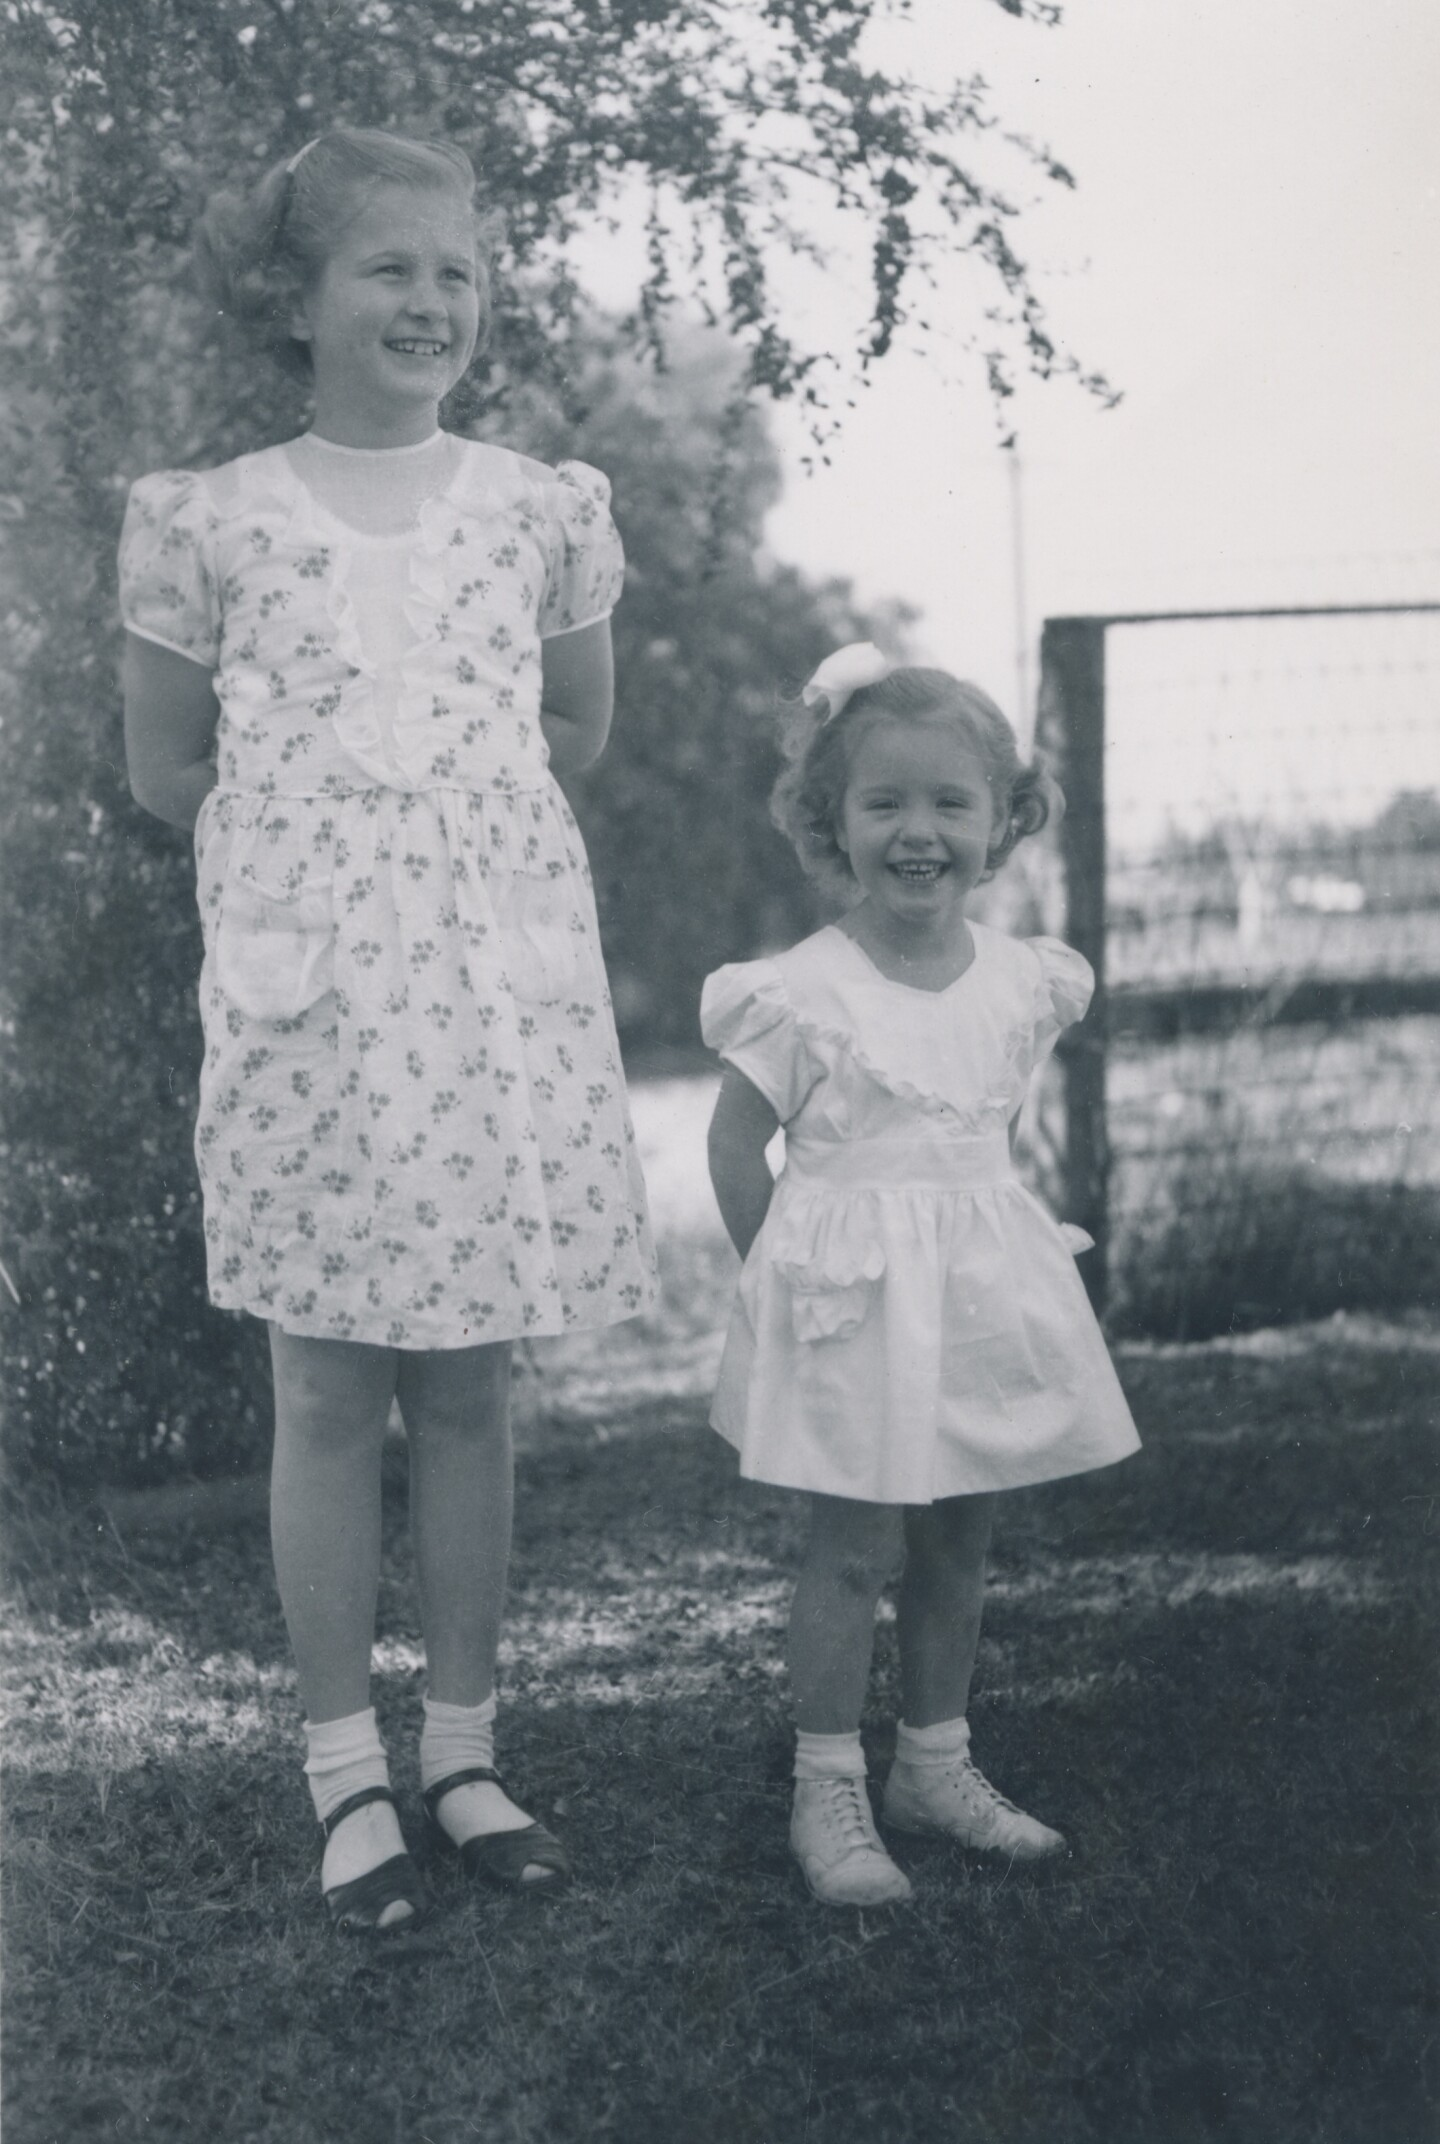 Before her death, three-year-old Kathy Fiscus (right) smiles next to her older sister Barbara (left) for a photo.